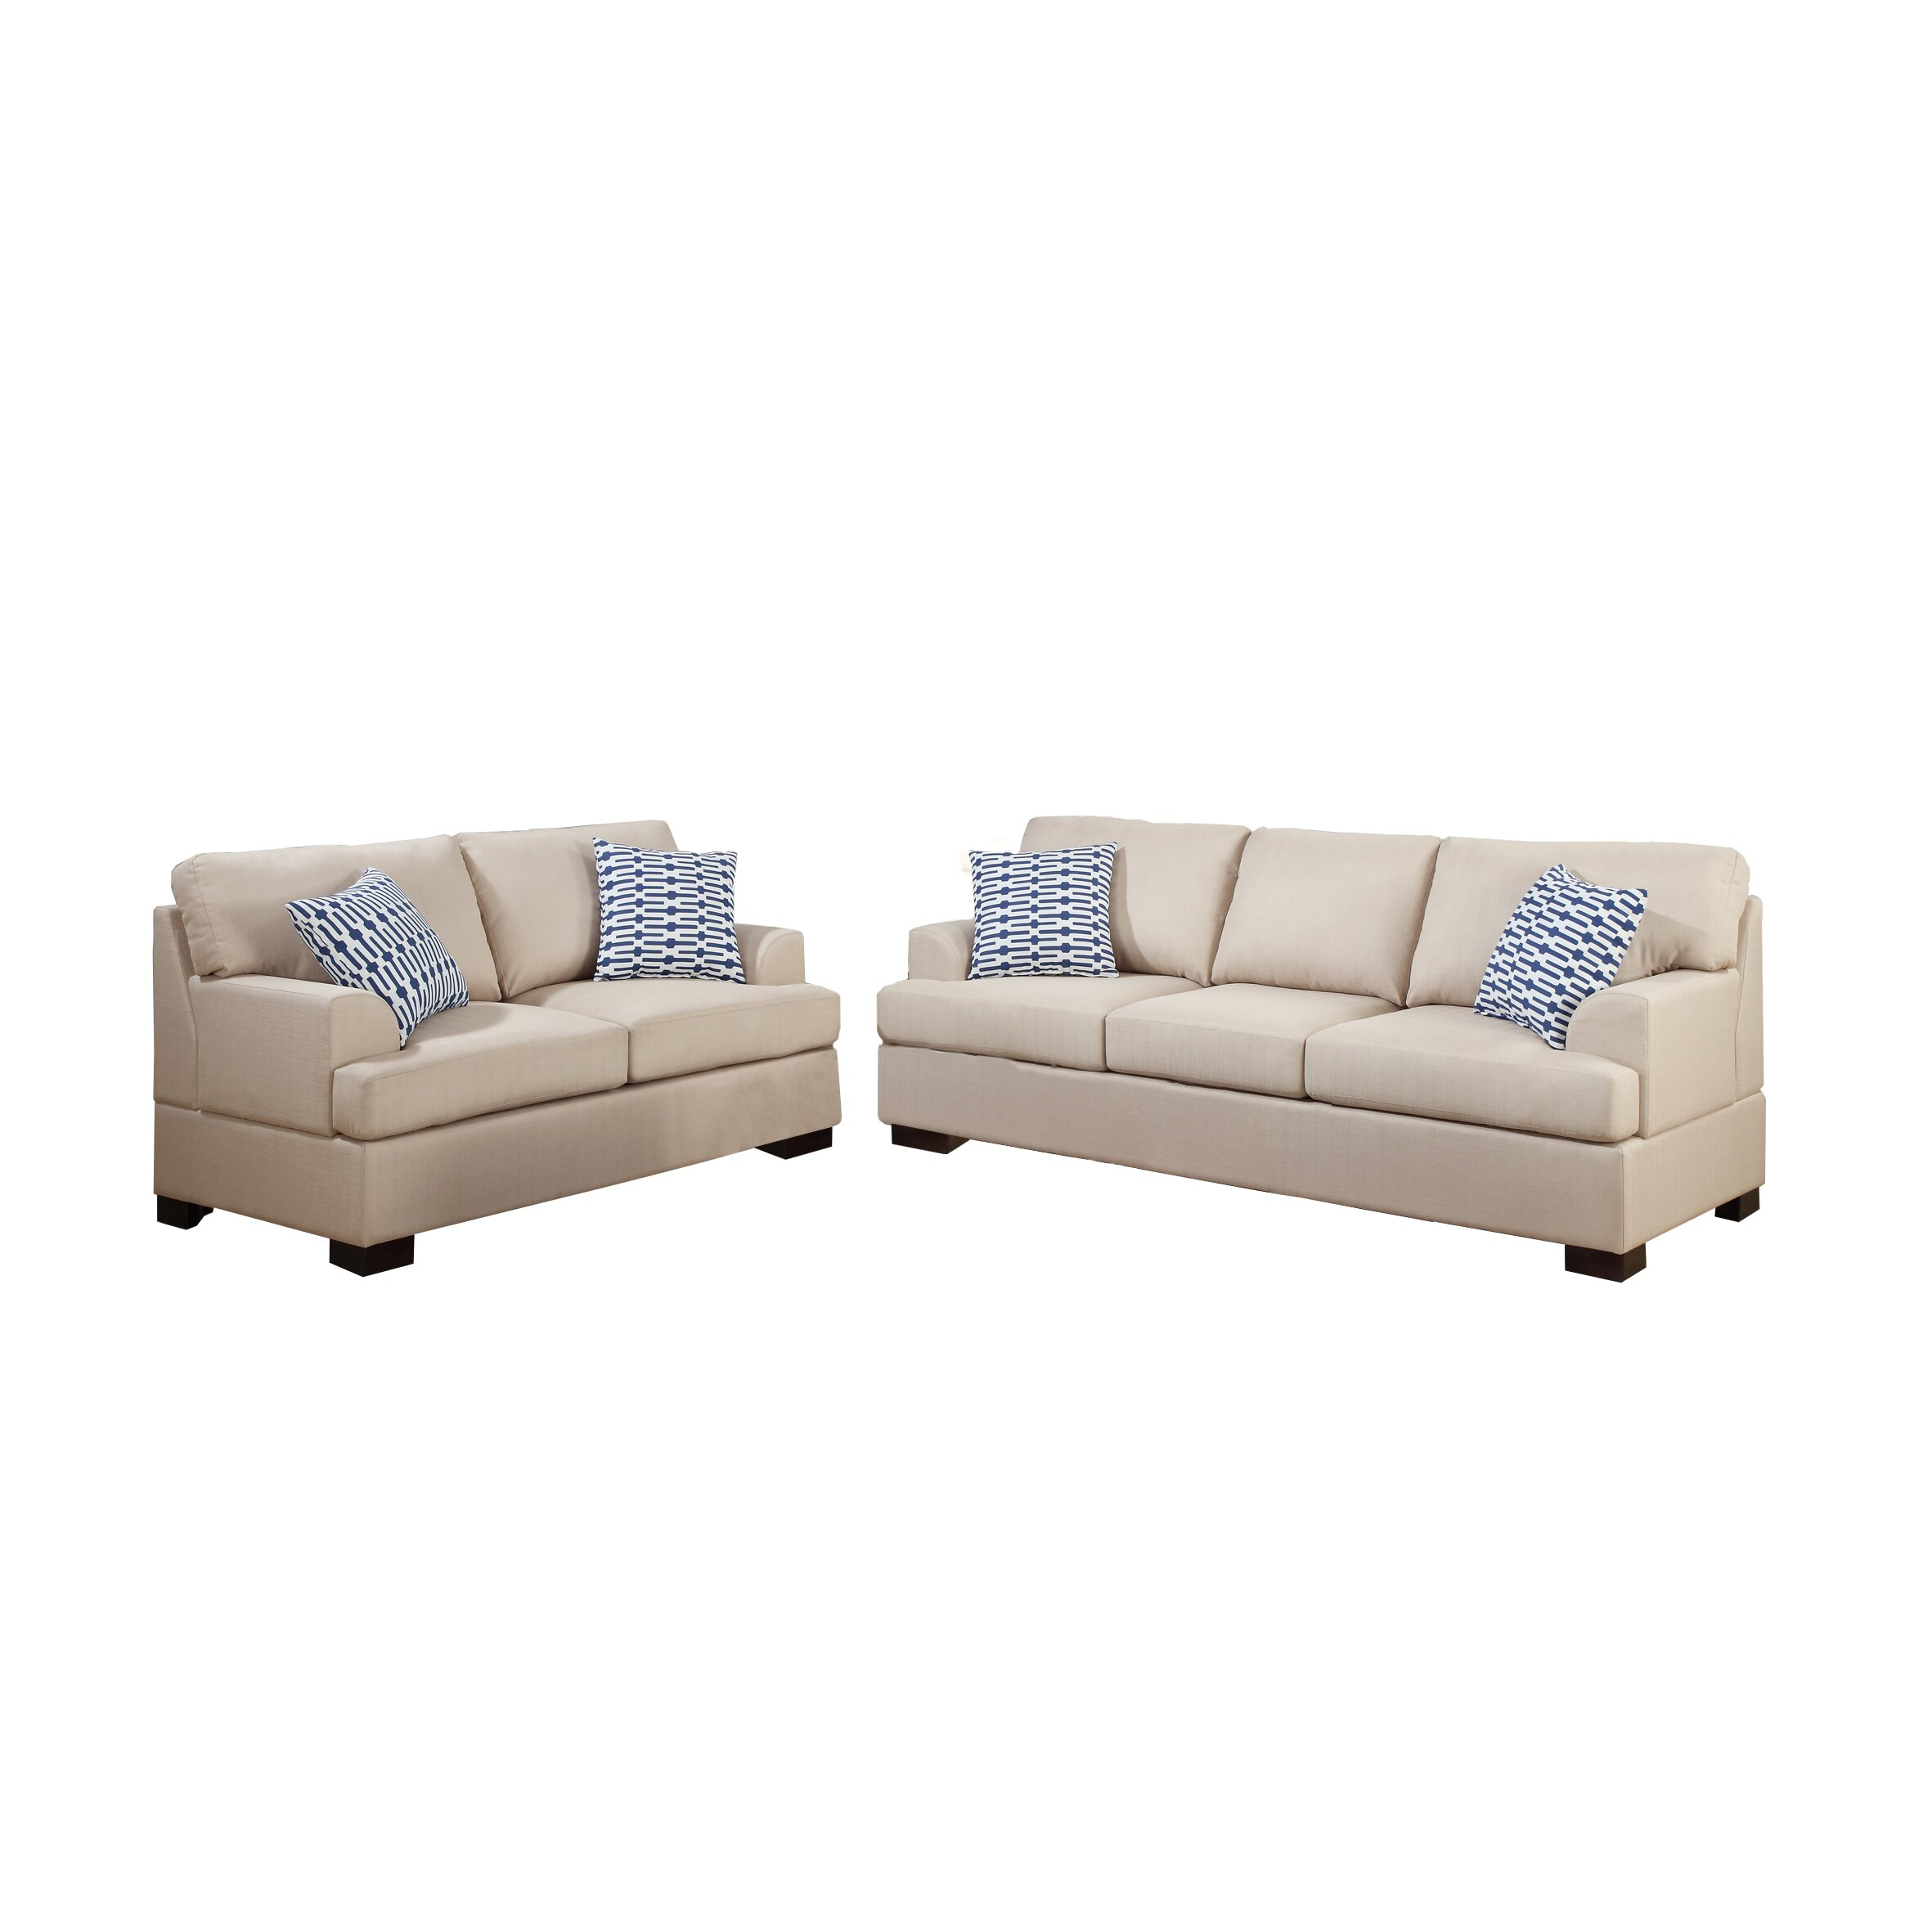 Poundex bobkona montega microfiber sofa and loveseat set reviews wayfair supply Microfiber sofa and loveseat set